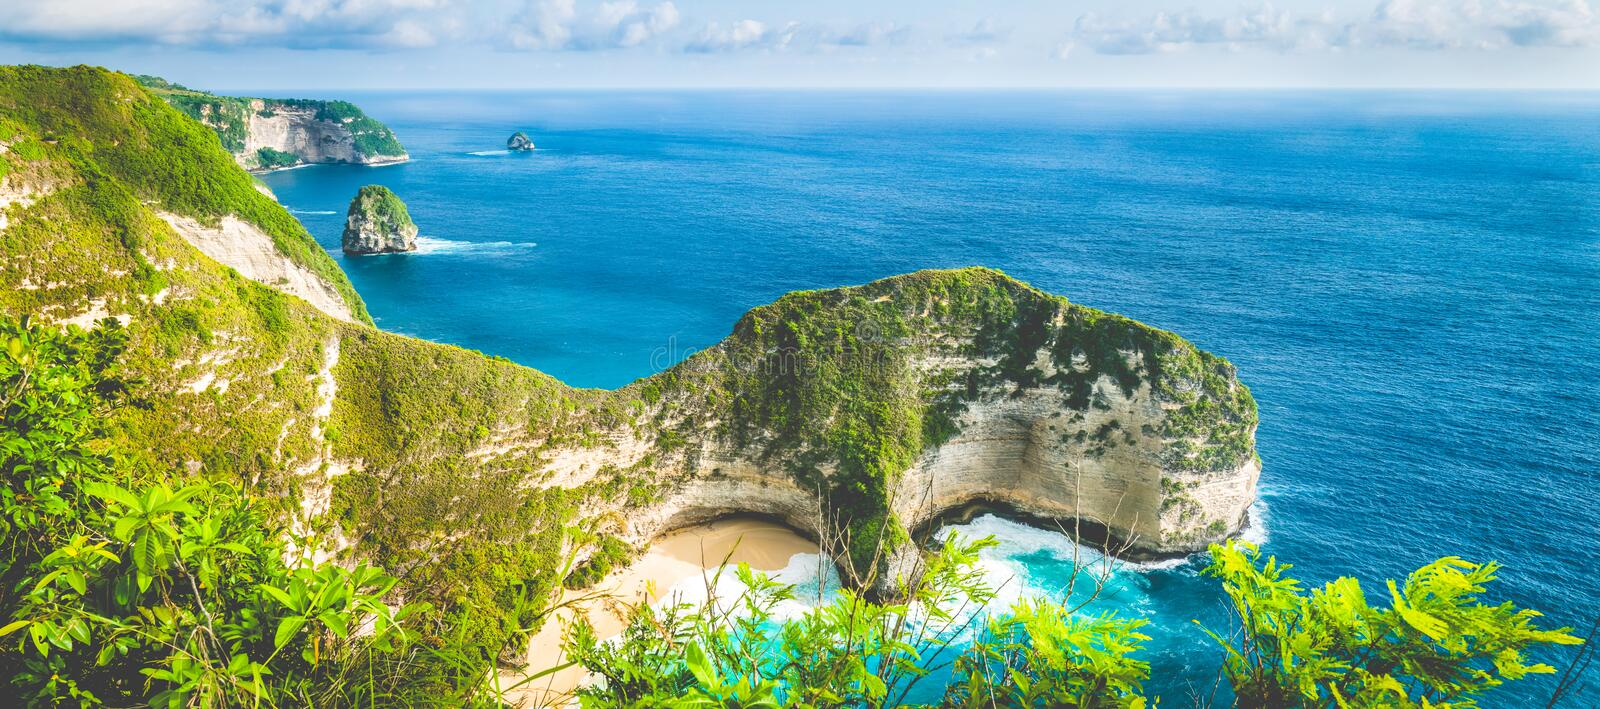 Karang Dawa, Manta Bay or Kelingking Beach on Nusa Penida Island, Bali, Indonesia.  royalty free stock image